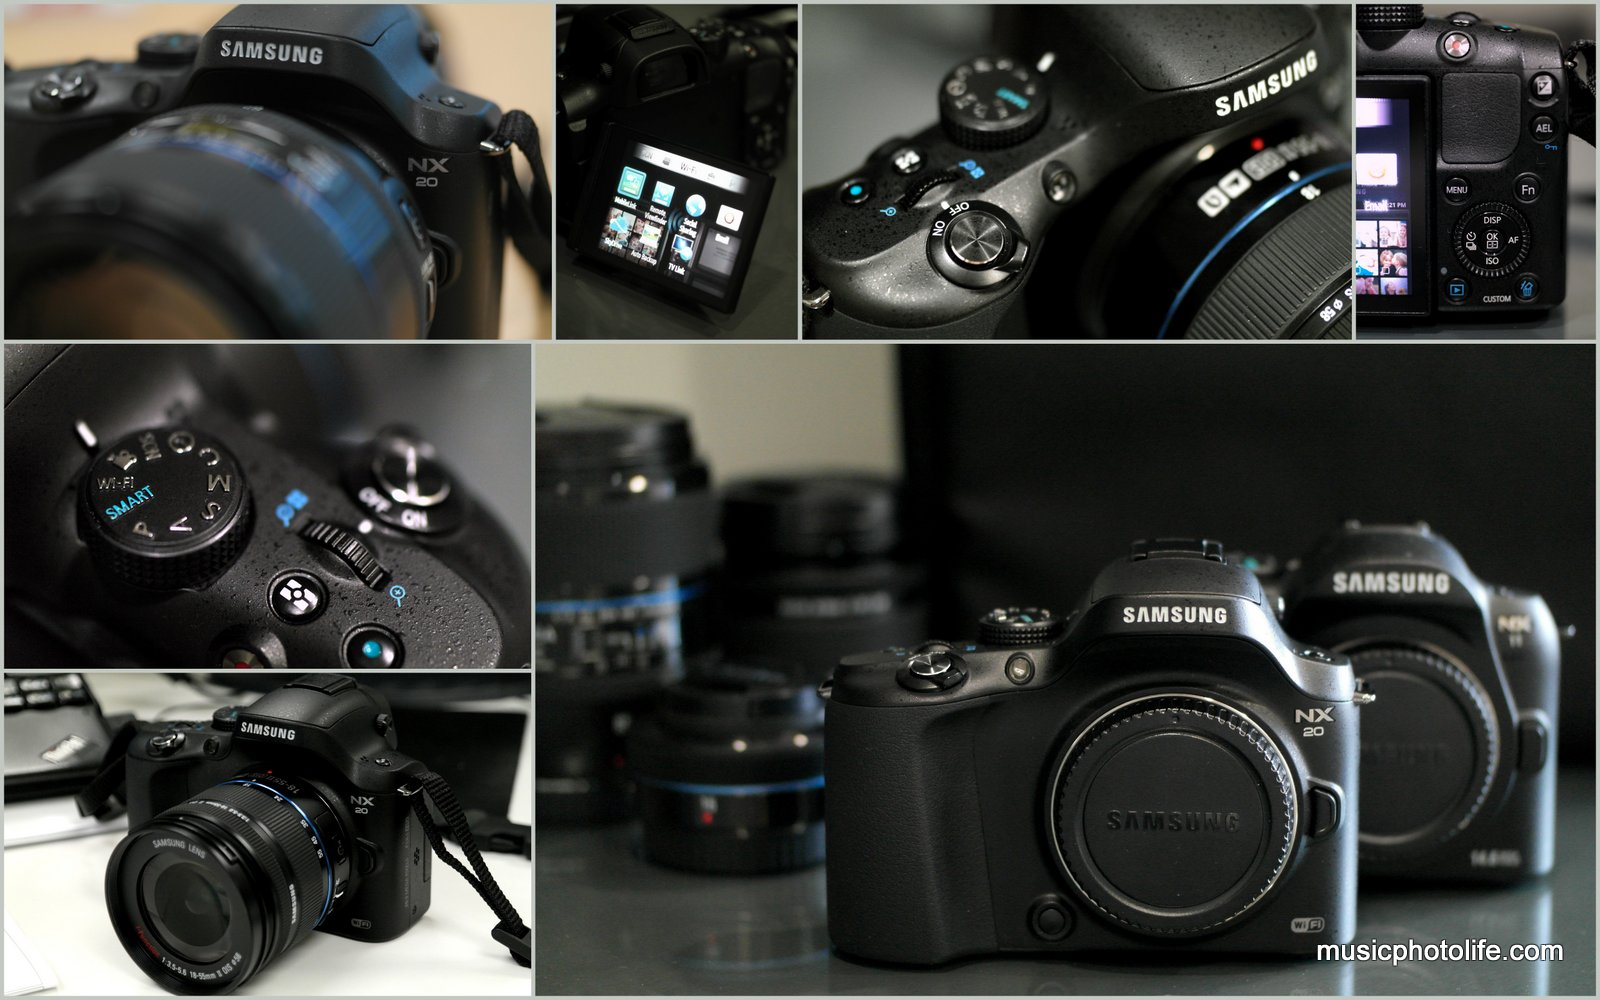 Samsung NX20: Quick Review